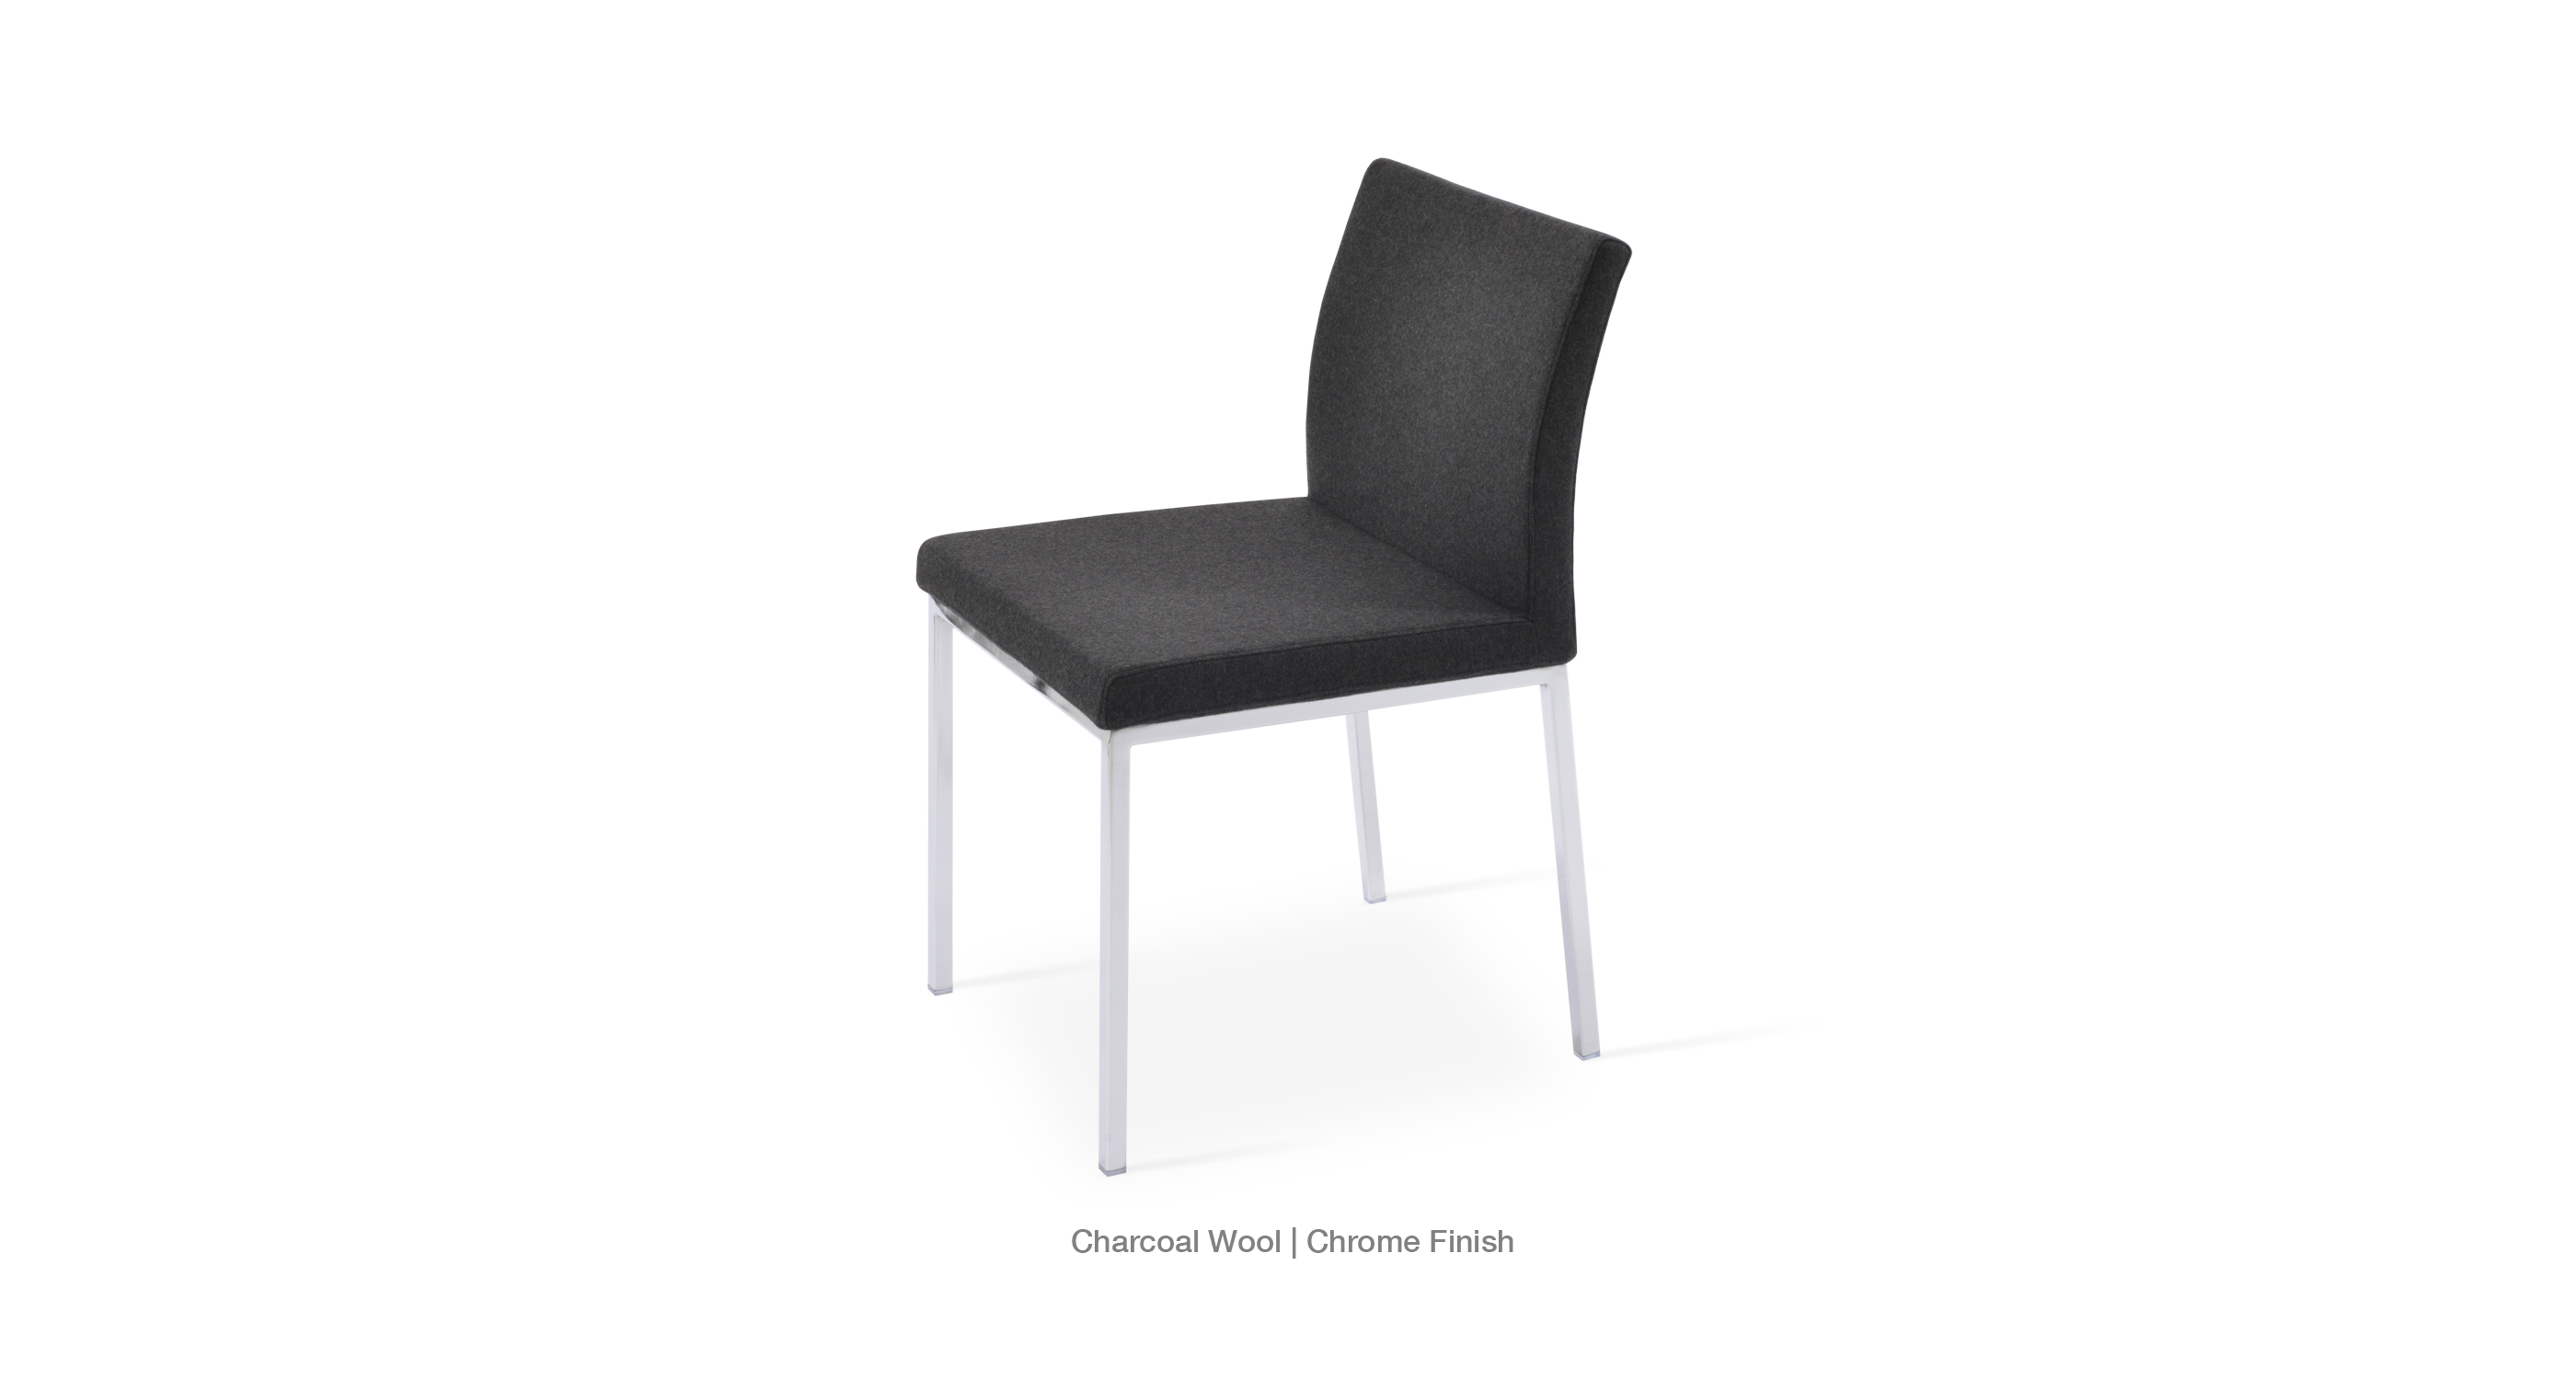 Modern Dining Chairs | Aria Metalsohoconcept For Best And Newest Aria 5 Piece Dining Sets (View 9 of 20)